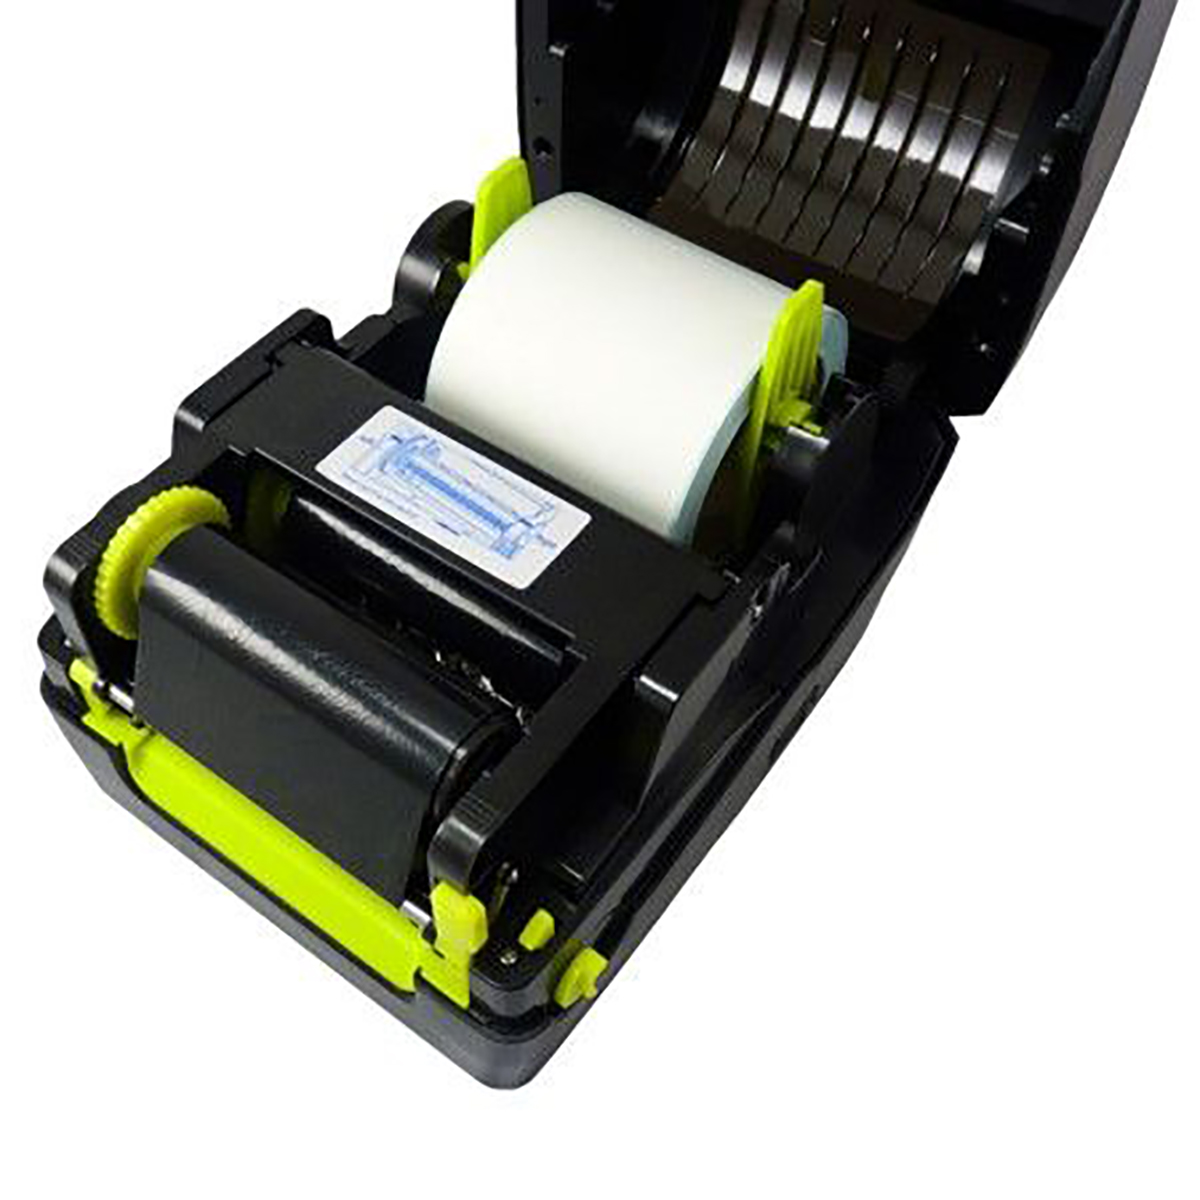 TYSSO (Exclusive) BLP-410 4 Inch Thermal Transfer/Thermal Direct ID & 2D Barcode Label Printer